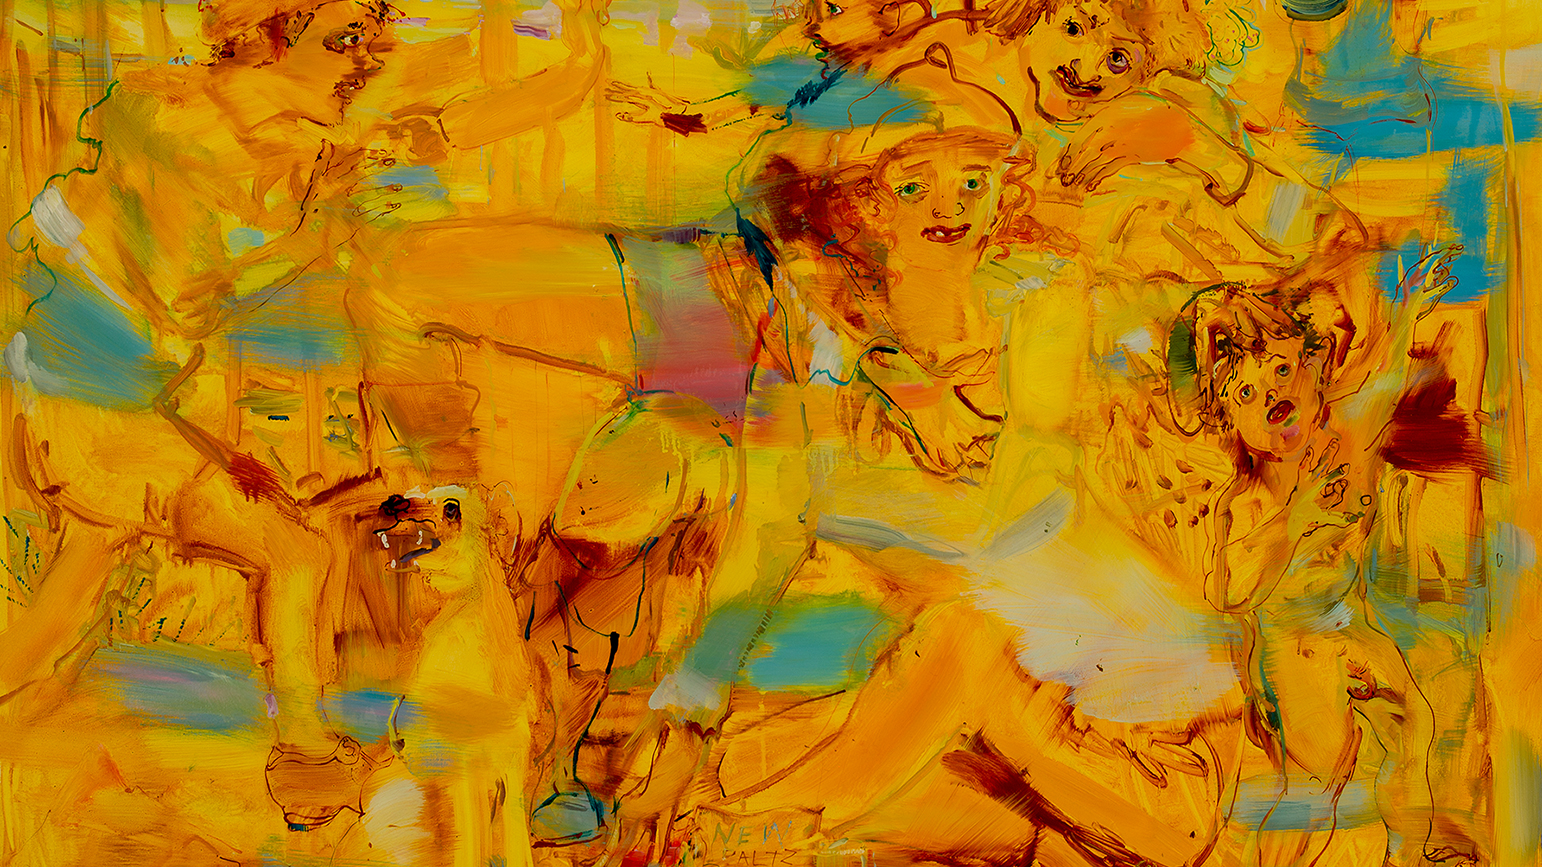 Painting by Angela Dufresne featuring loosely sketched human figures moving across the canvas against a yellow background with brush strokes of blue.